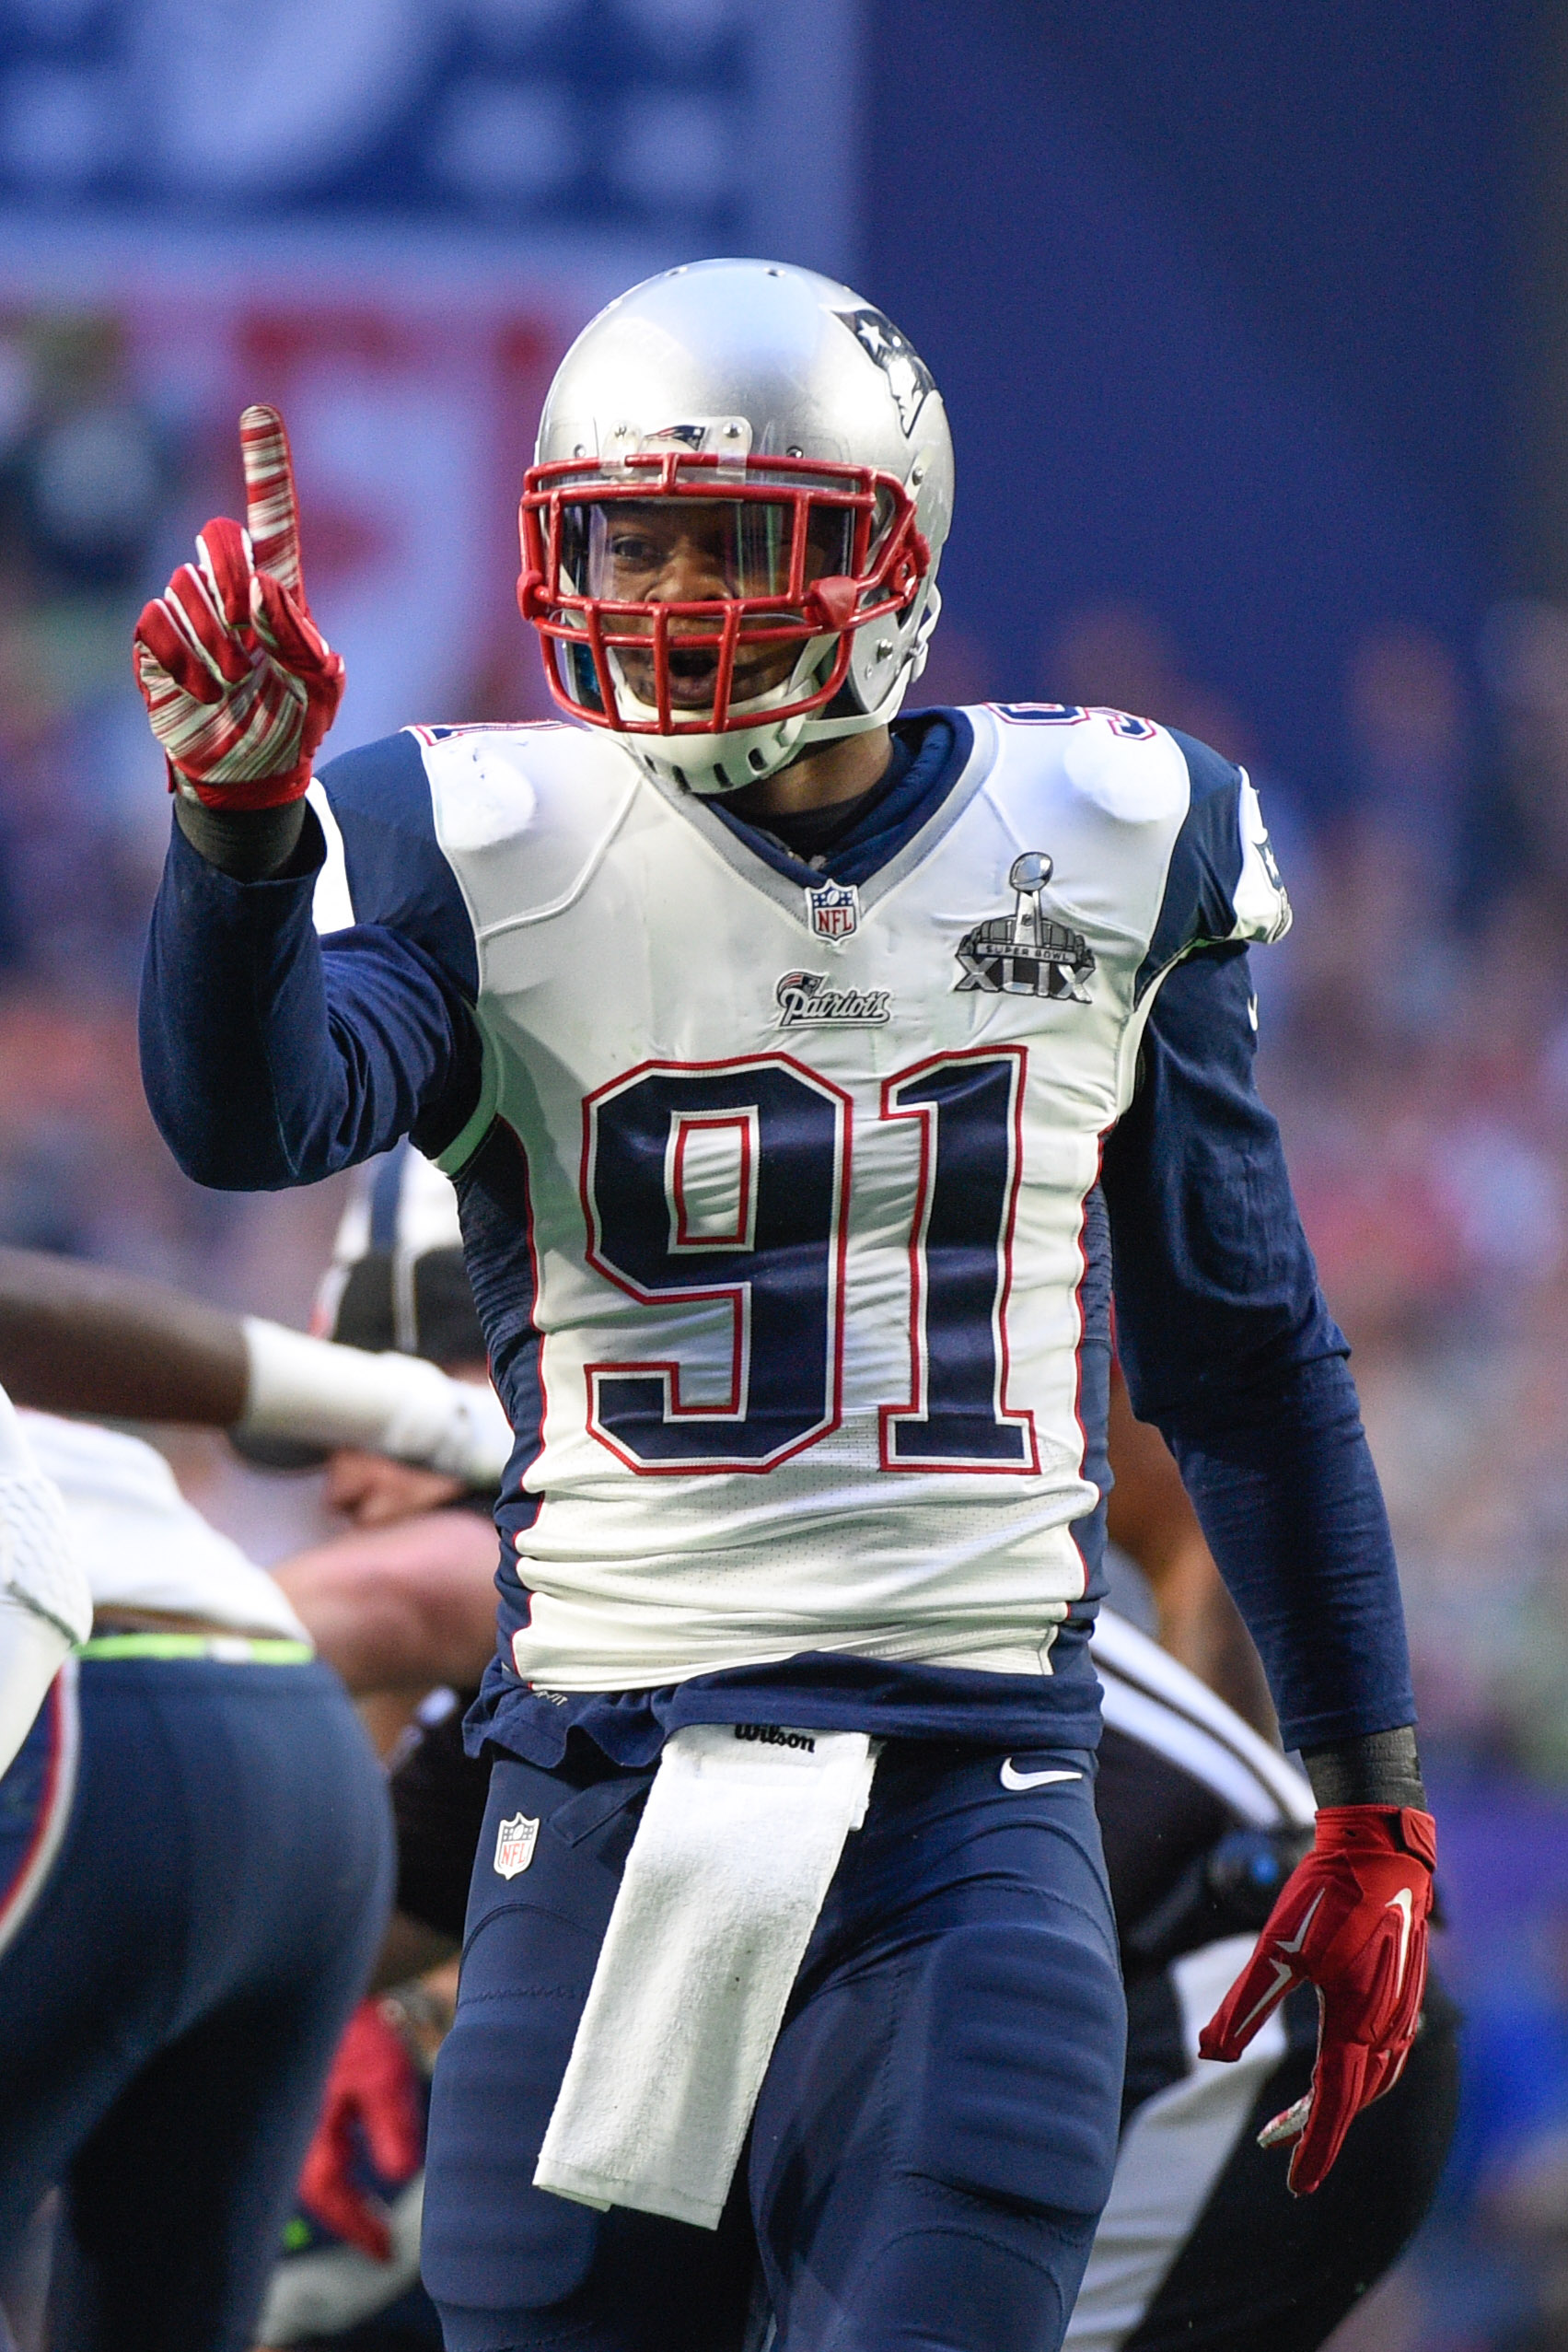 Jamie Collins Rejected $11MM/Year From Pats